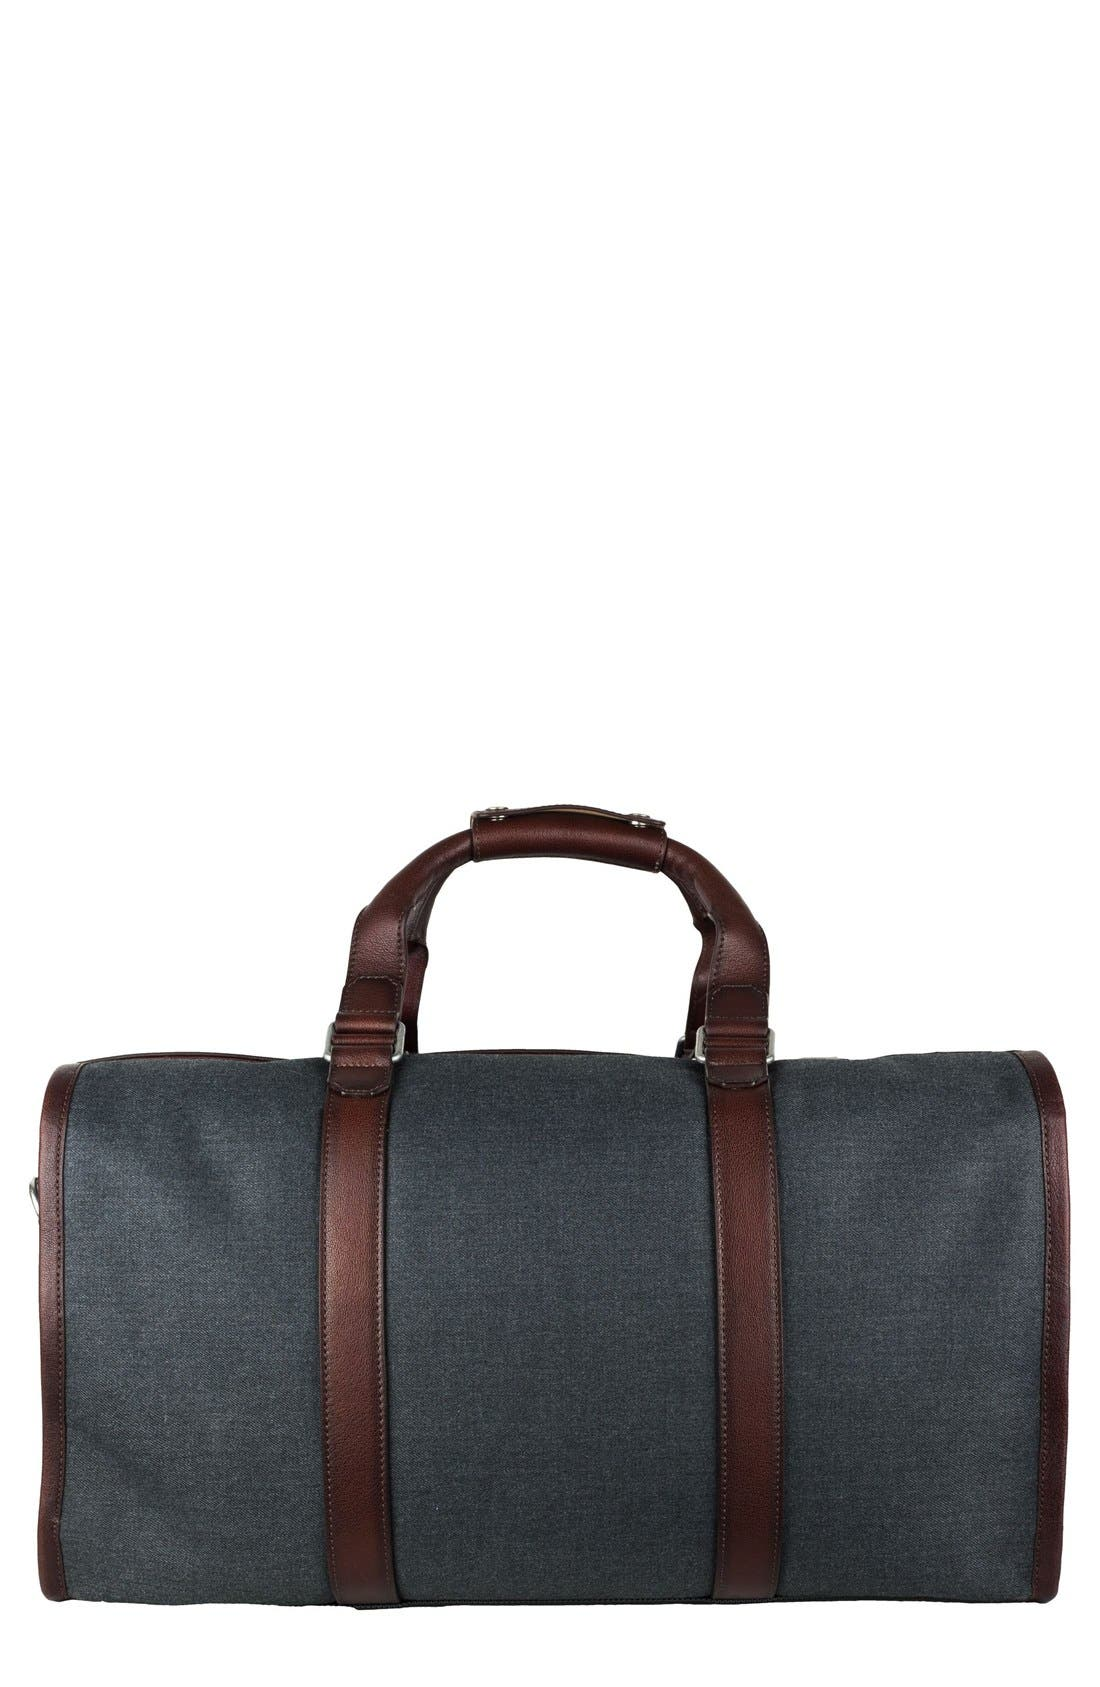 'Grafton' Duffel Bag,                             Main thumbnail 1, color,                             020